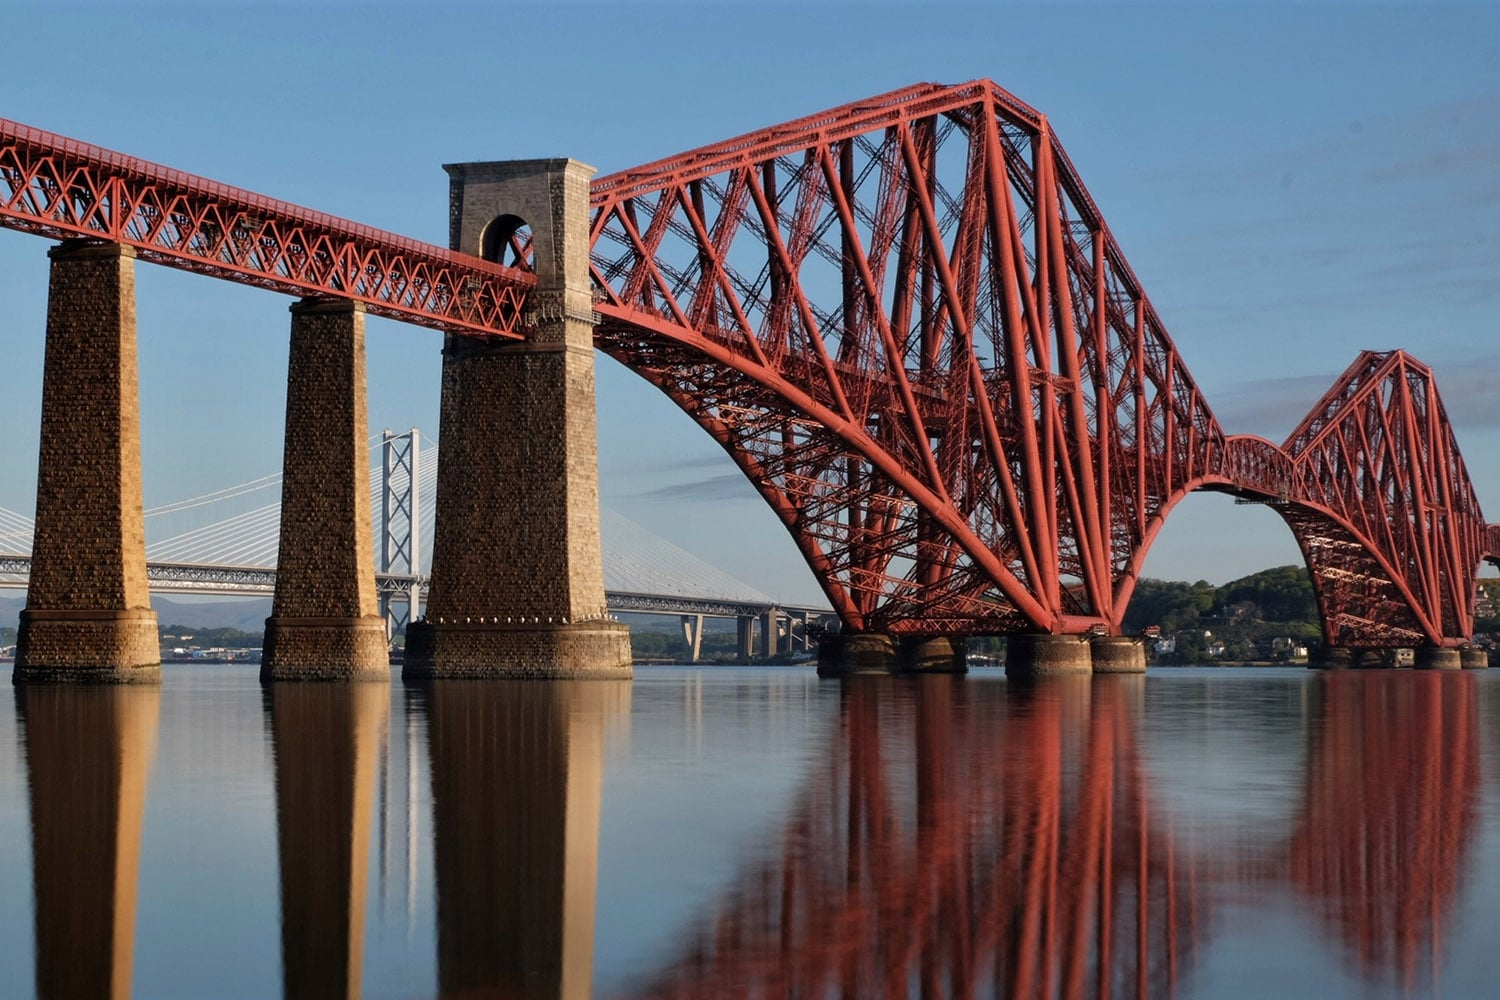 The Forth Railway Bridge is a UNESCO world heritage site and a must see on a private tour of Scotland